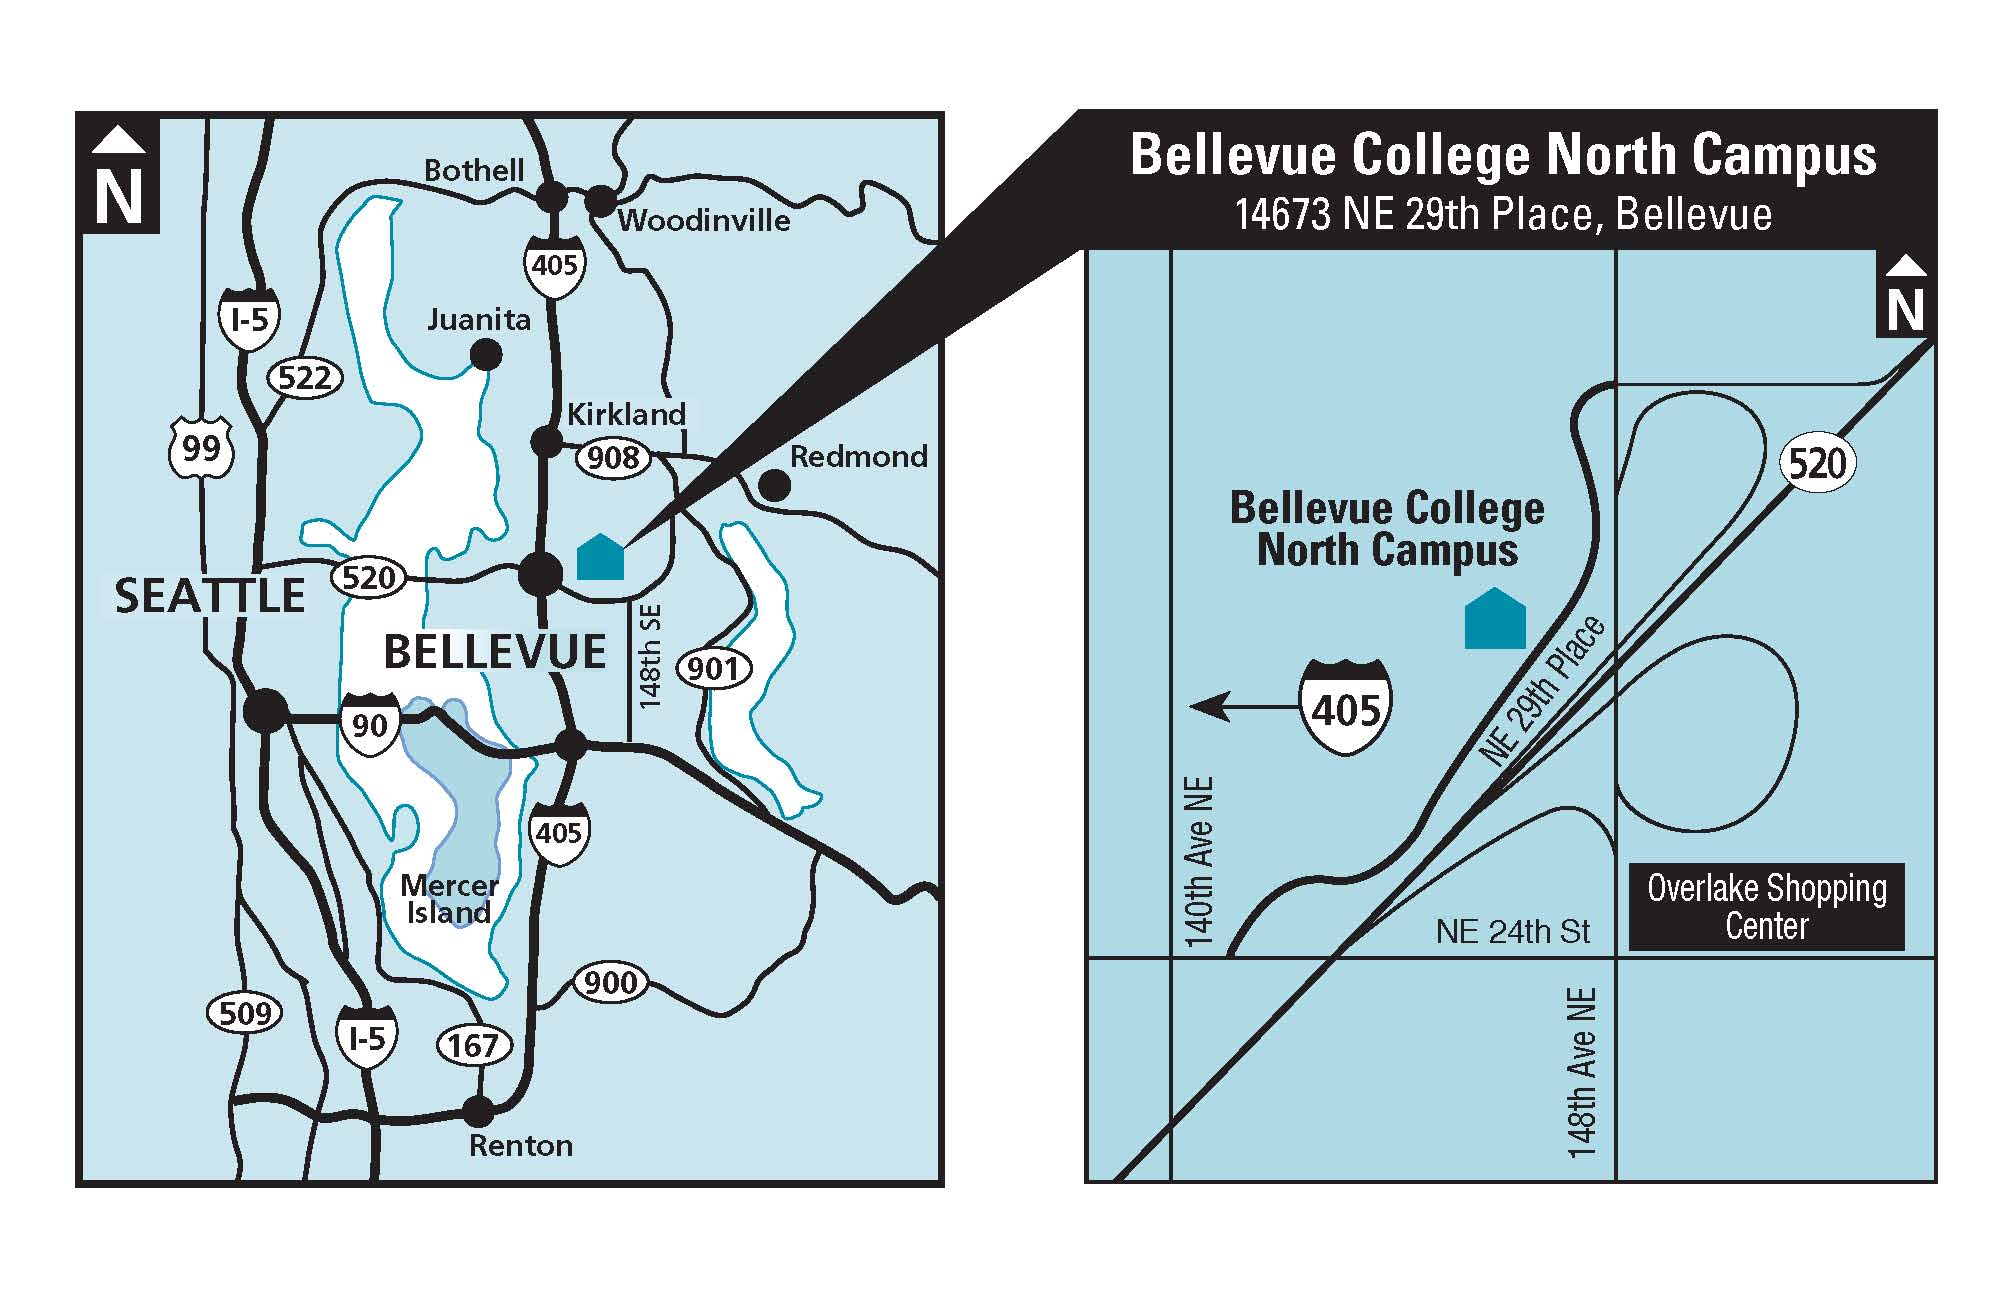 Map showing location of Bellevue College north campus location. Links to larger version of map.